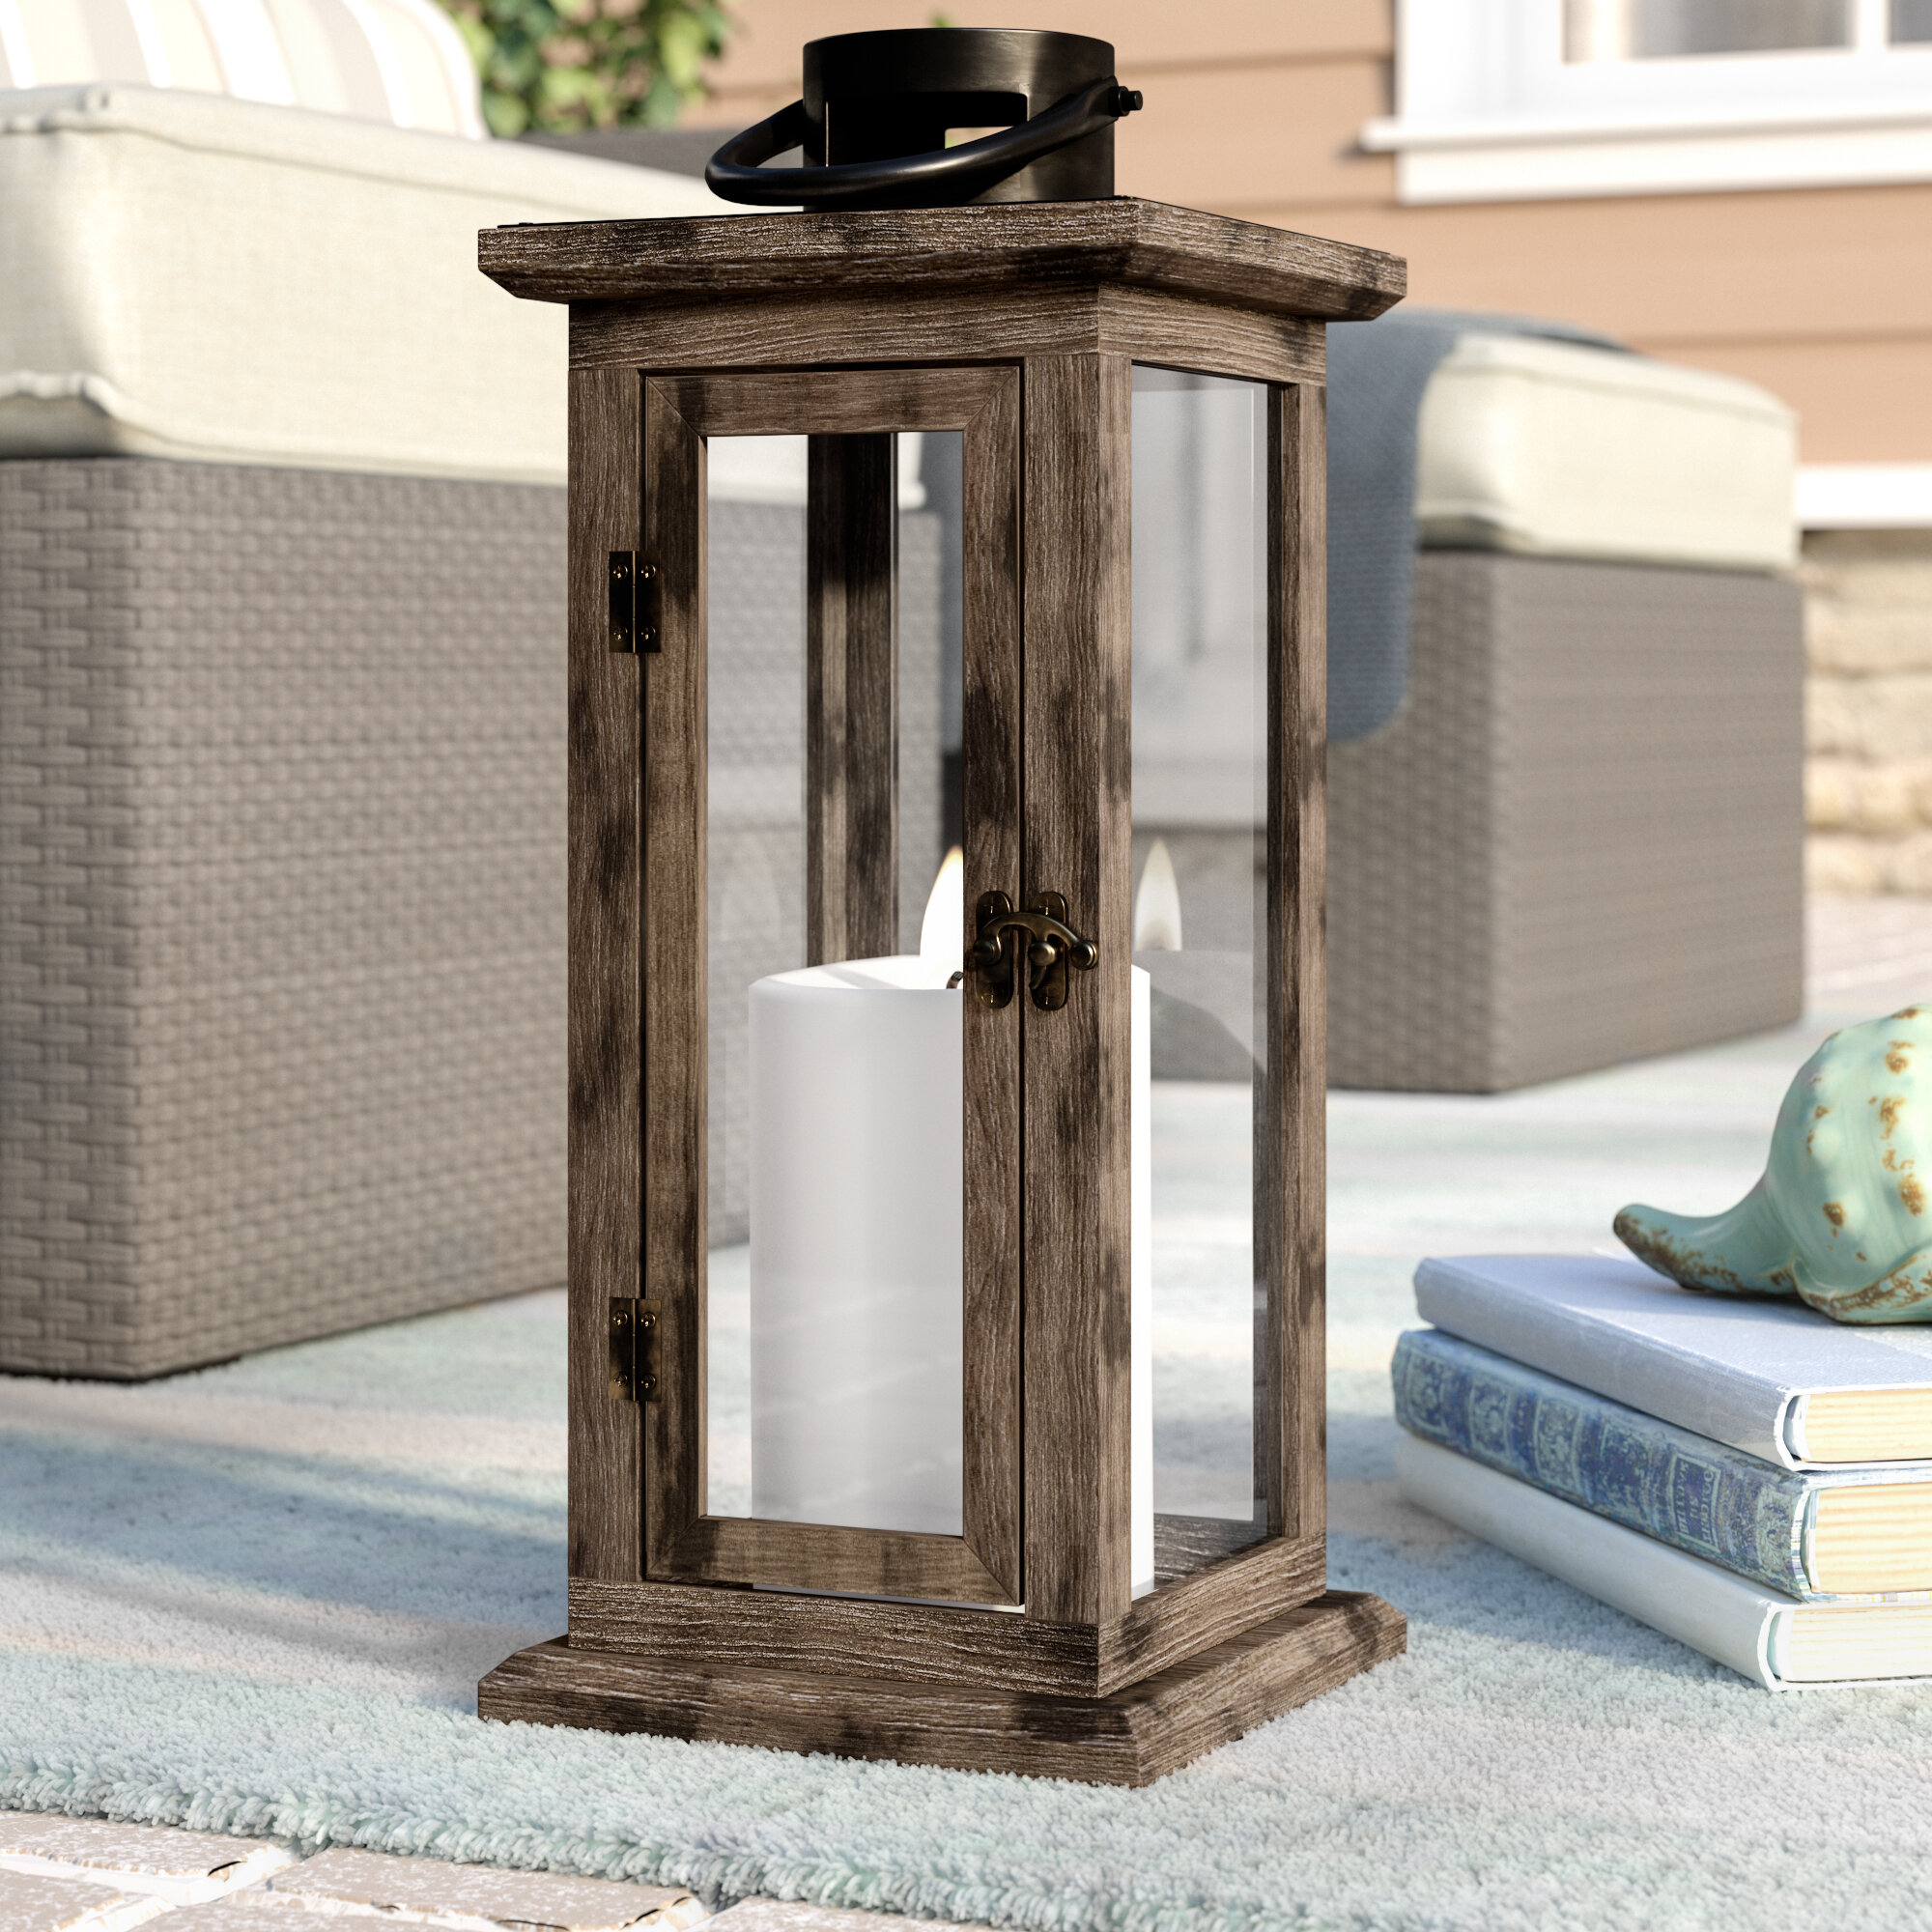 Floor Tall Large Candle Holders You Ll Love In 2021 Wayfair